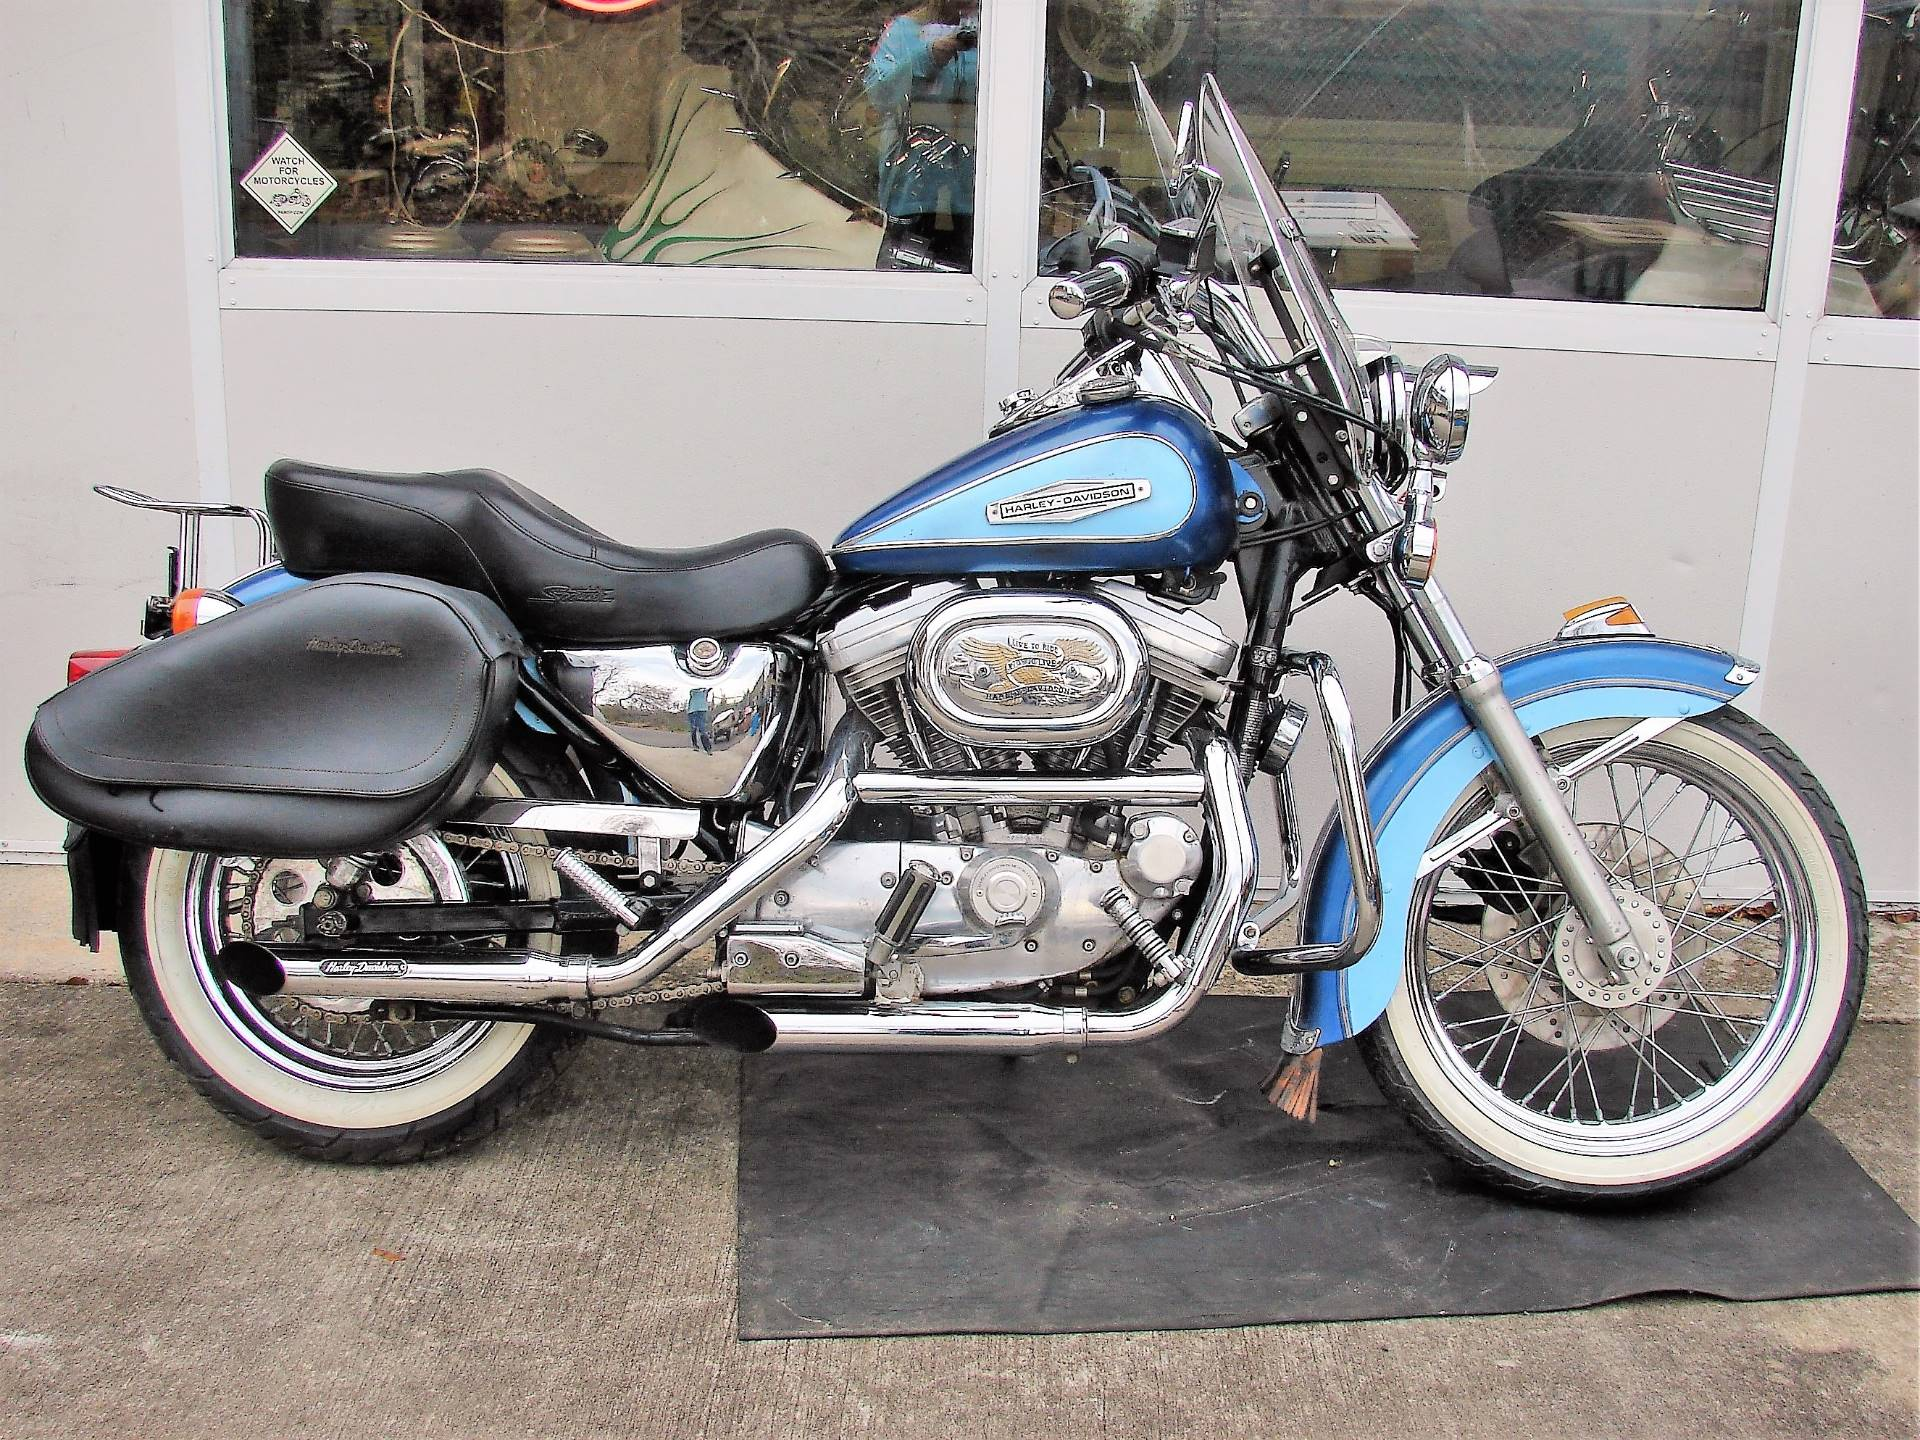 1989 Harley-Davidson XLH 883 Sportster (w/ Touring Conversion) in Williamstown, New Jersey - Photo 13